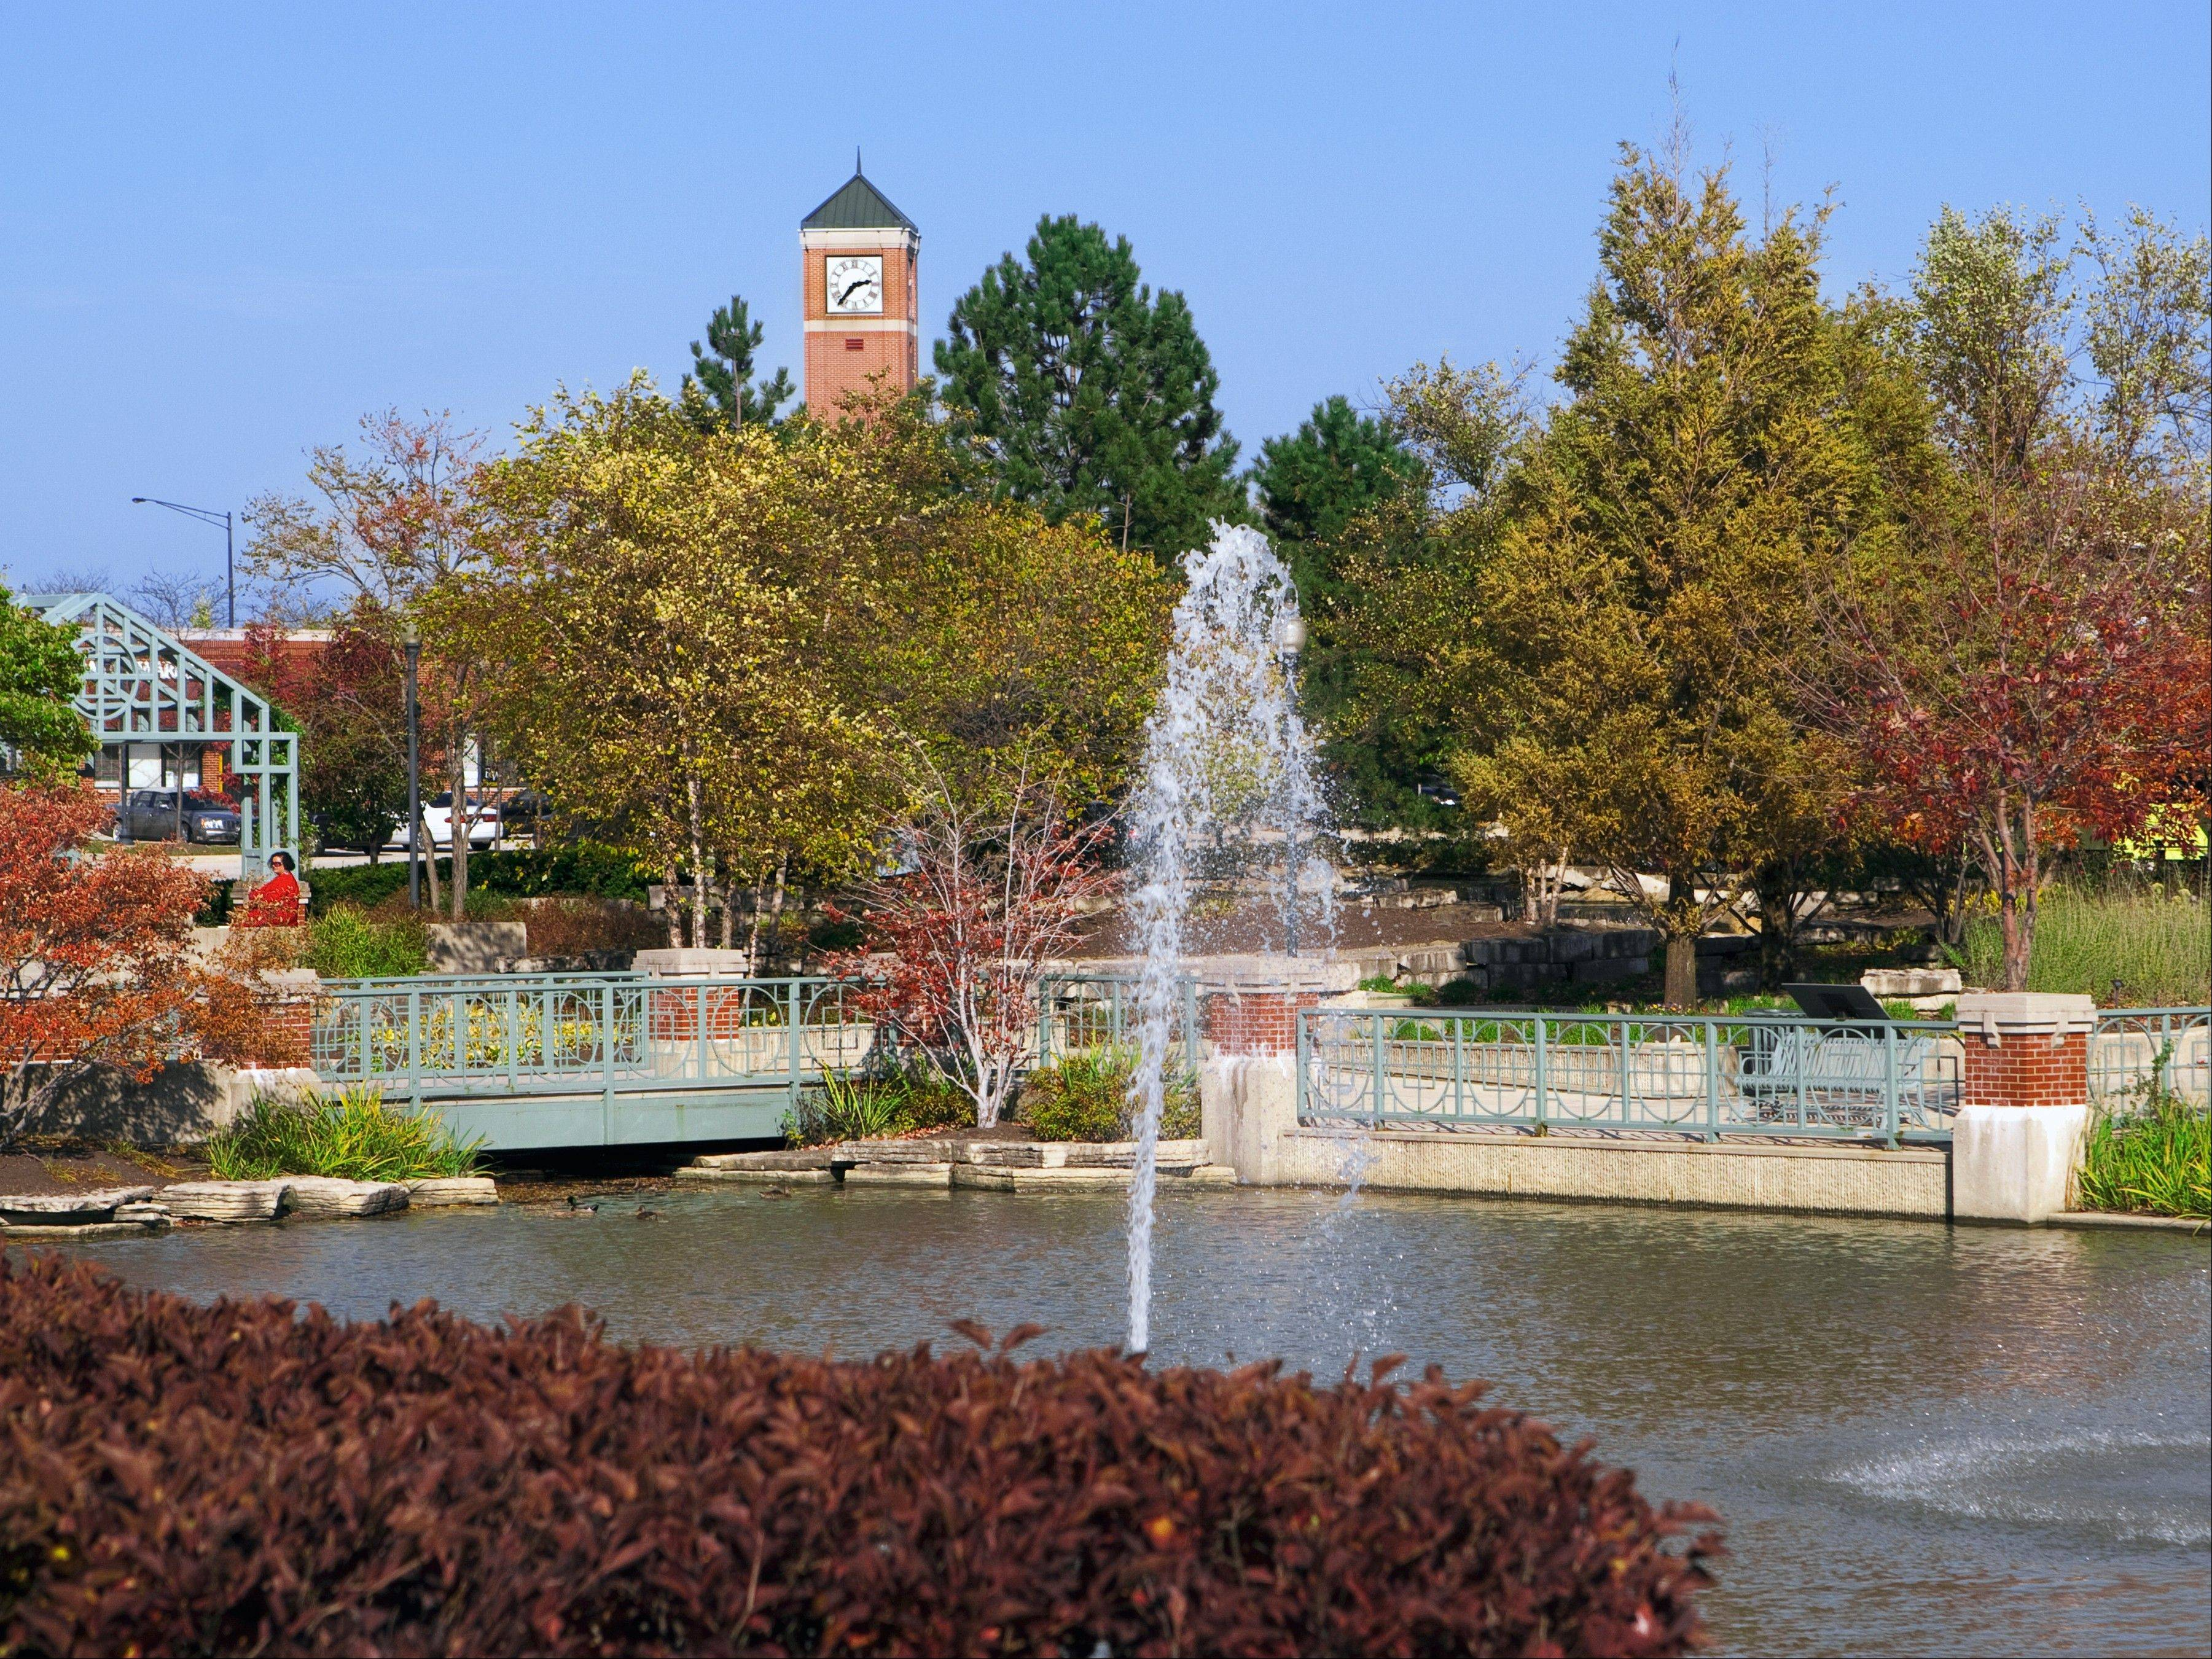 This photo of Schaumburg's Town Square at Schaumburg and Roselle roads in early autumn, taken by the village's Production Supervisor Rob Pileckis, will be featured in the National League of Cities' 2013 calendar for September.